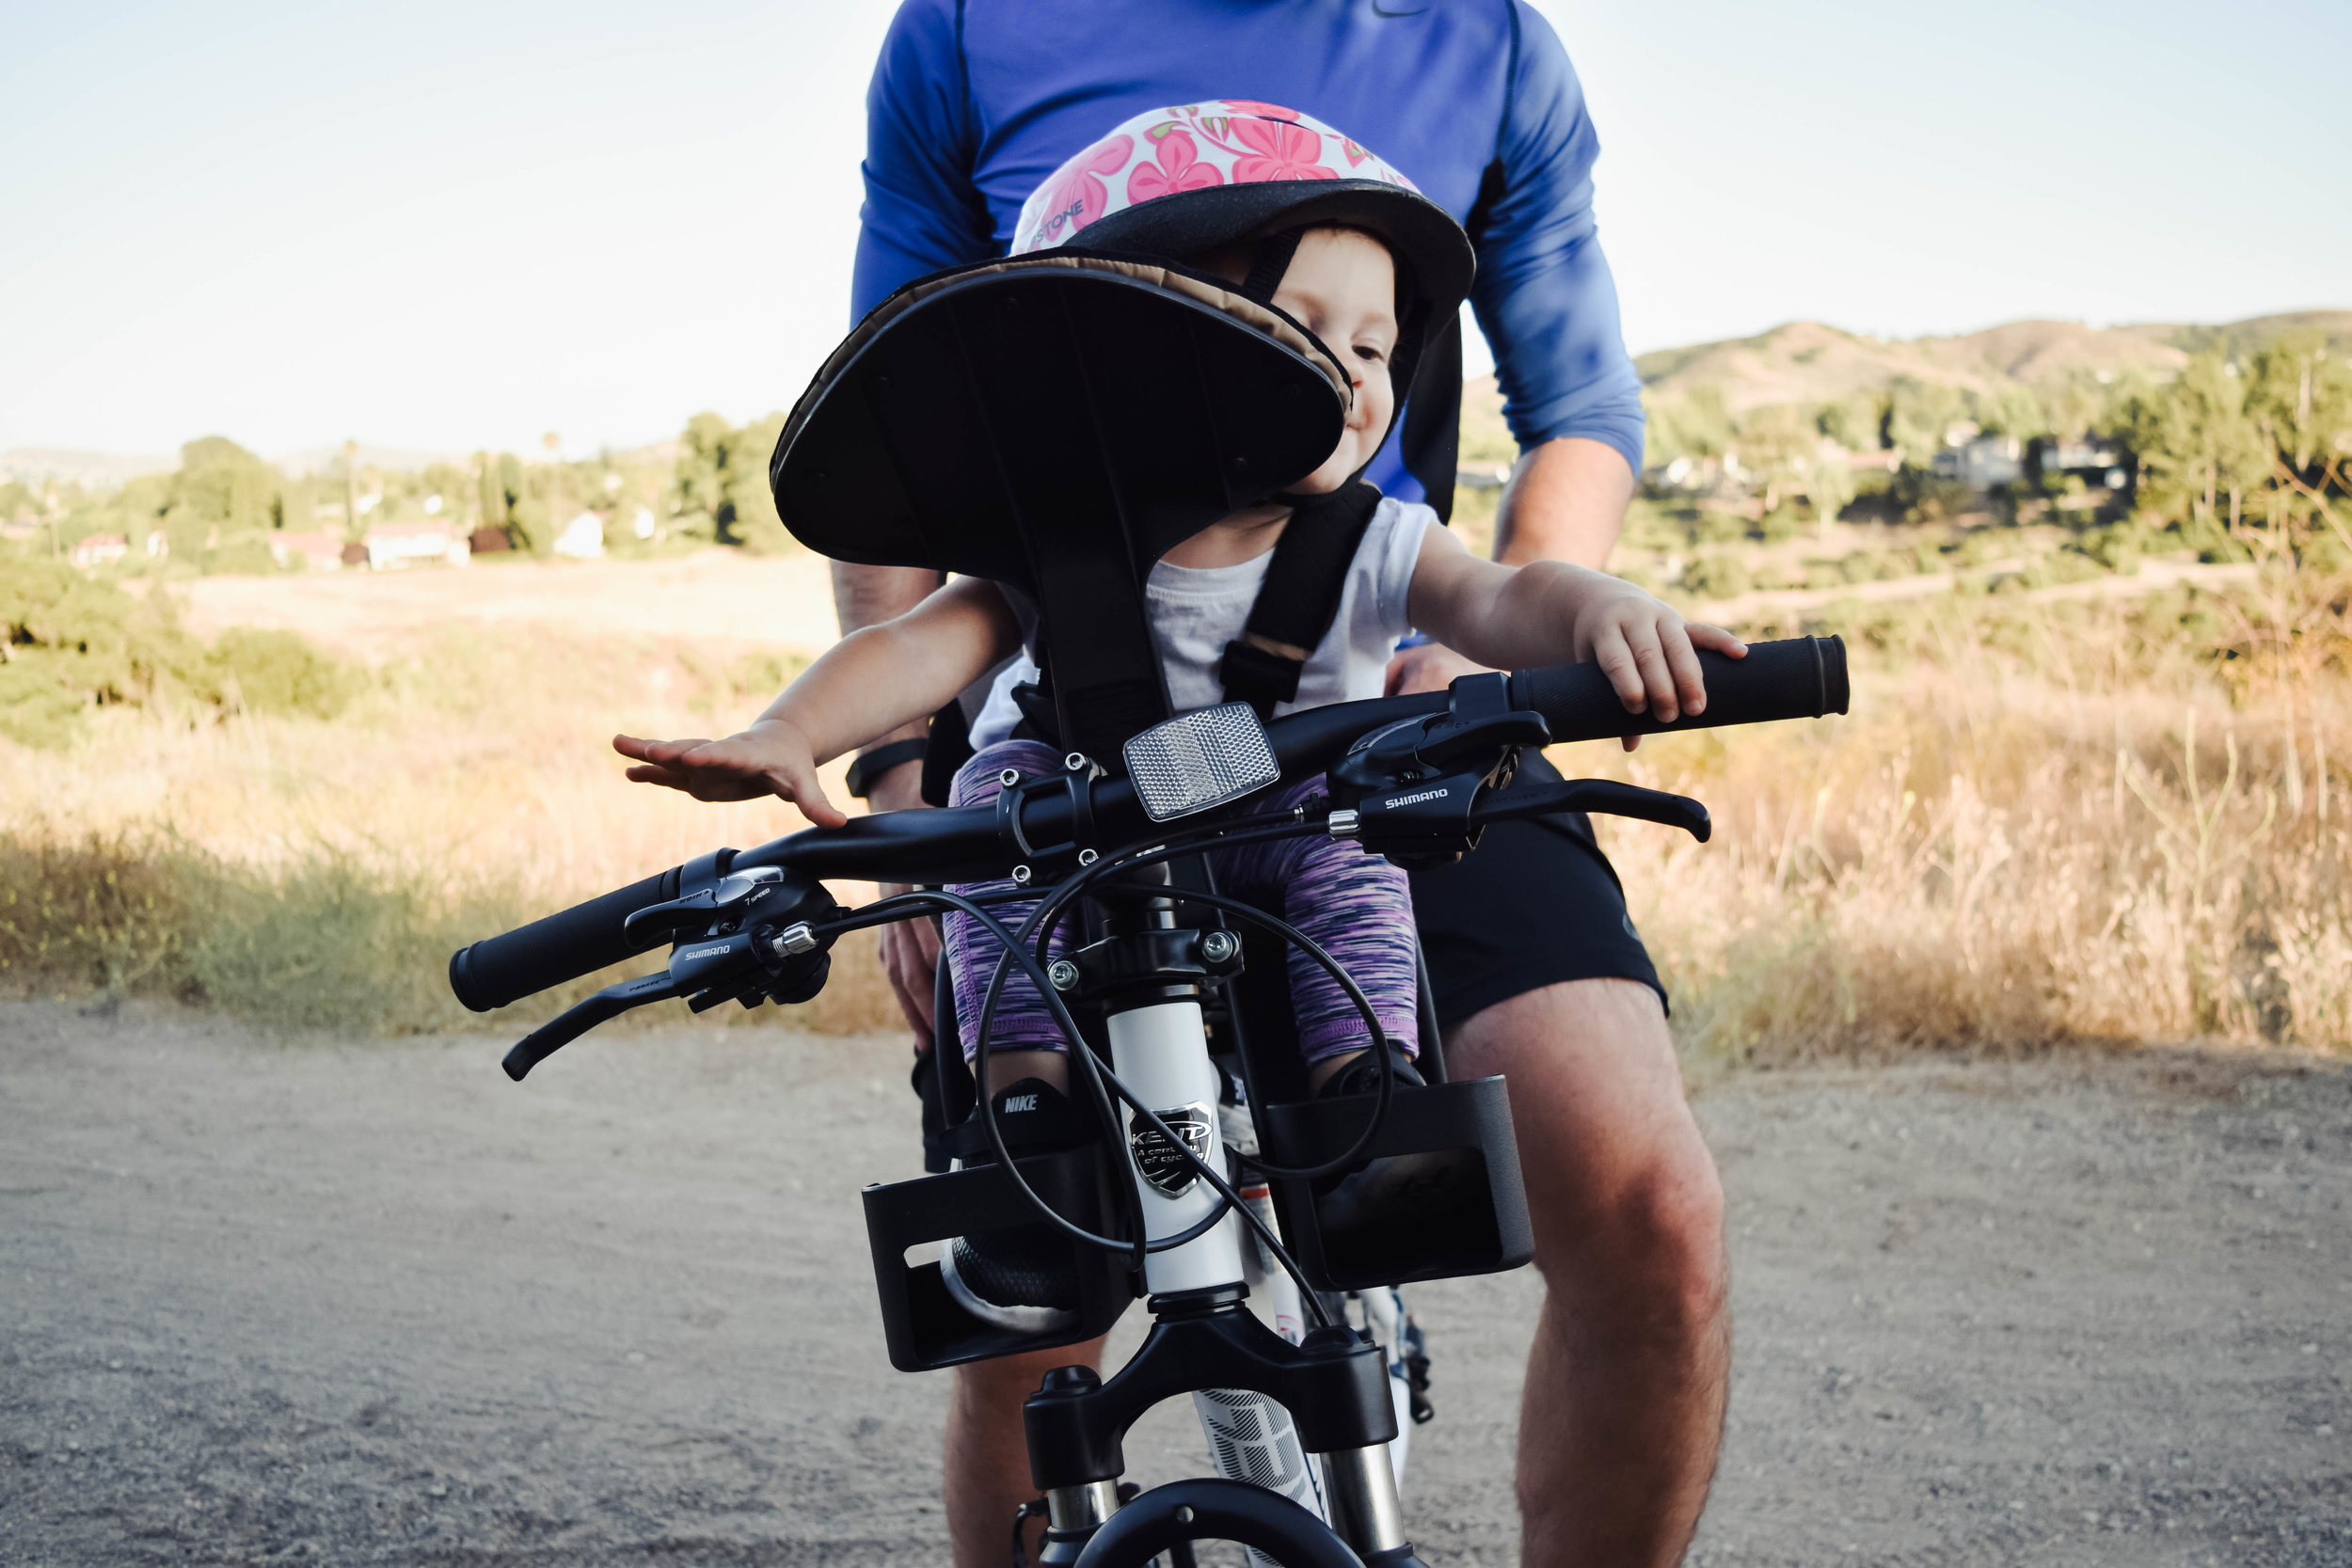 Kent Bicycles -- Baby Bike Seat Attachment | A Fun Way to Exercise - Fun Summer Daddy + Me Activities